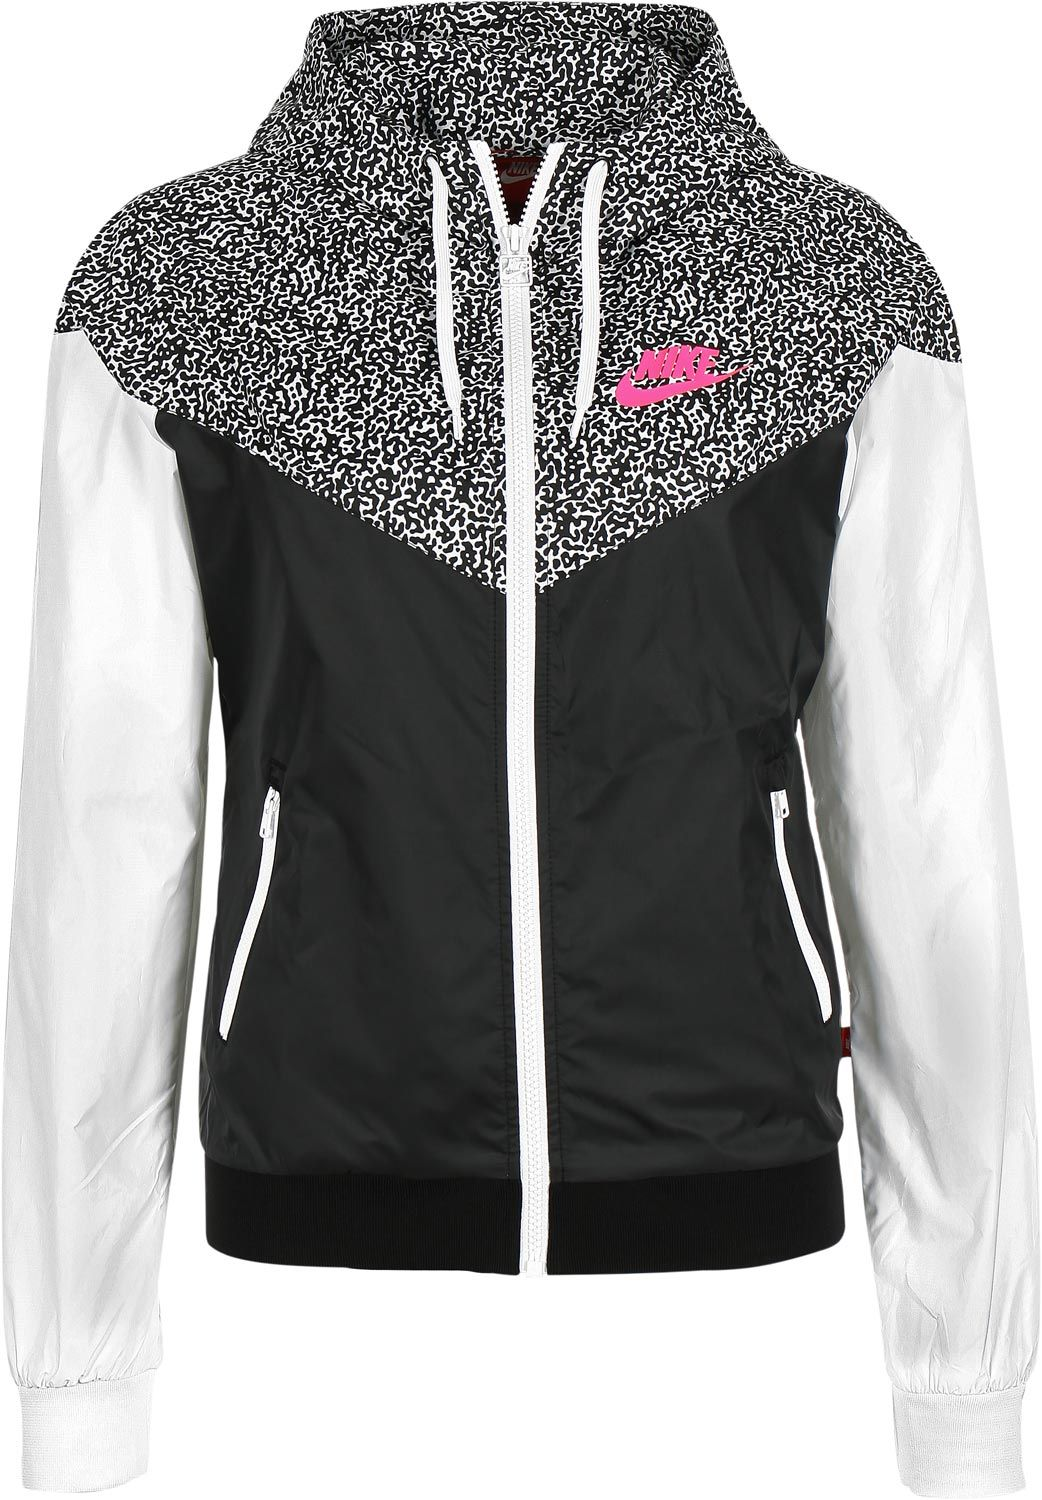 buy popular 73721 63a06 nike windbreakers for women - Google Search Nike Tøj, Sportstøj, Atletiske  Sko, Kvinder